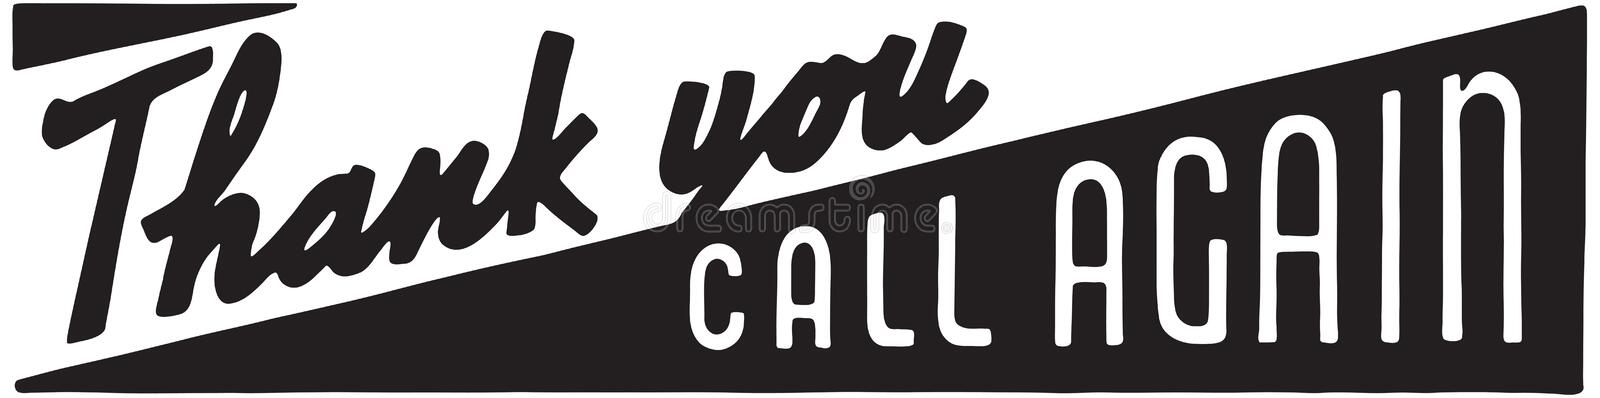 Thank You Call Again 10. Retro Ad Art Banner royalty free illustration